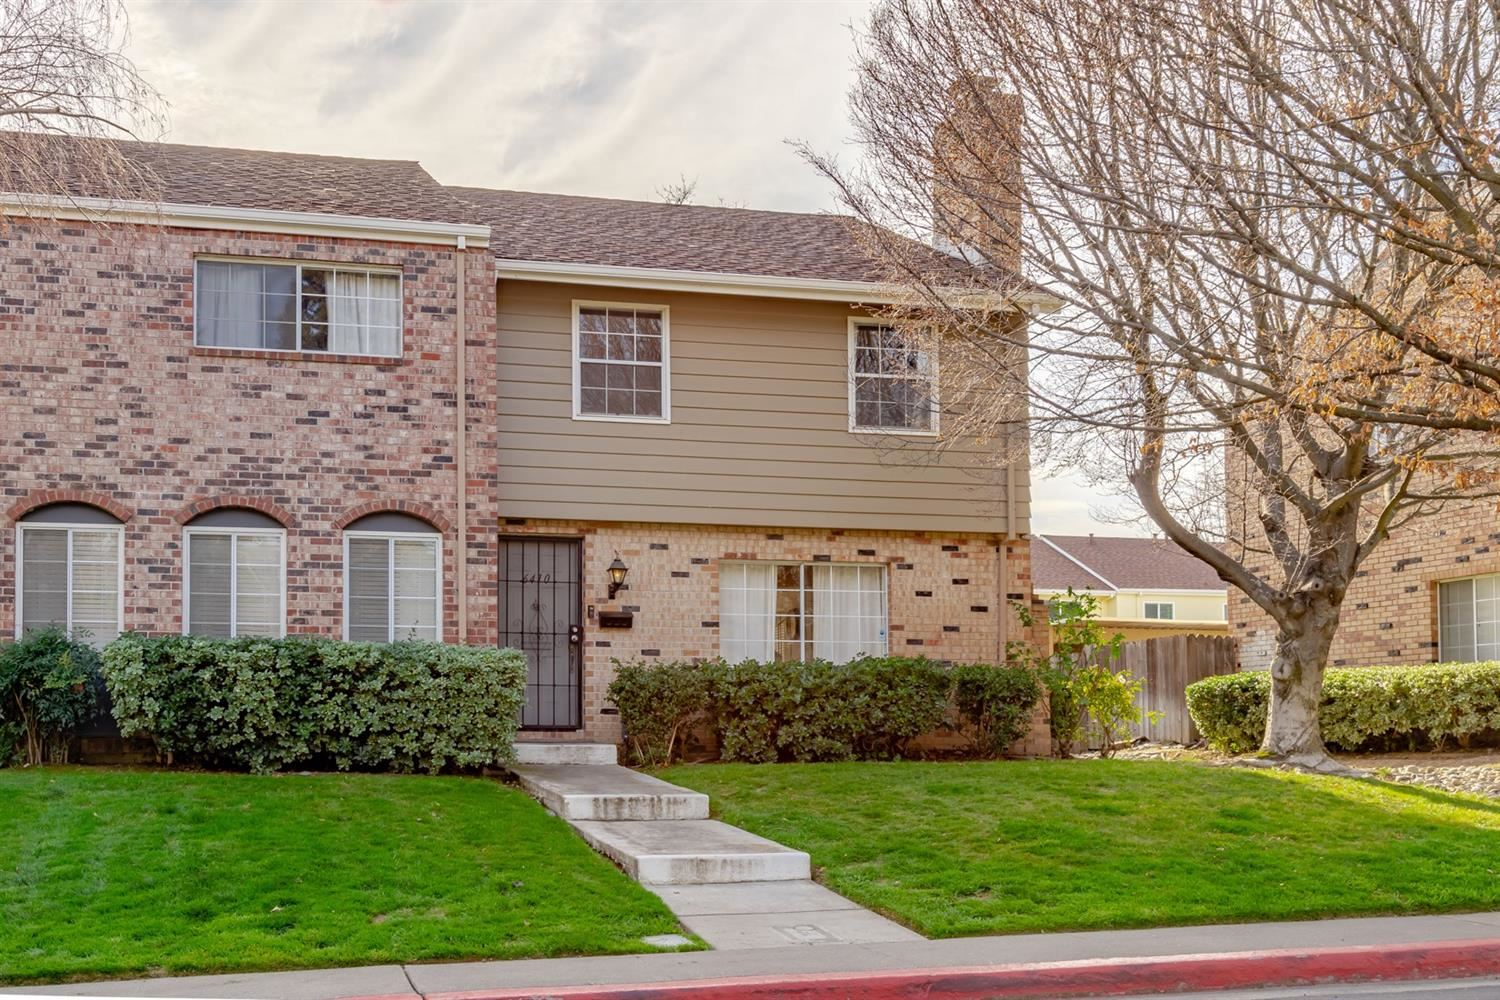 Photo of 6410 Wexford Circle, Citrus Heights, CA 95621 (MLS # 221013728)